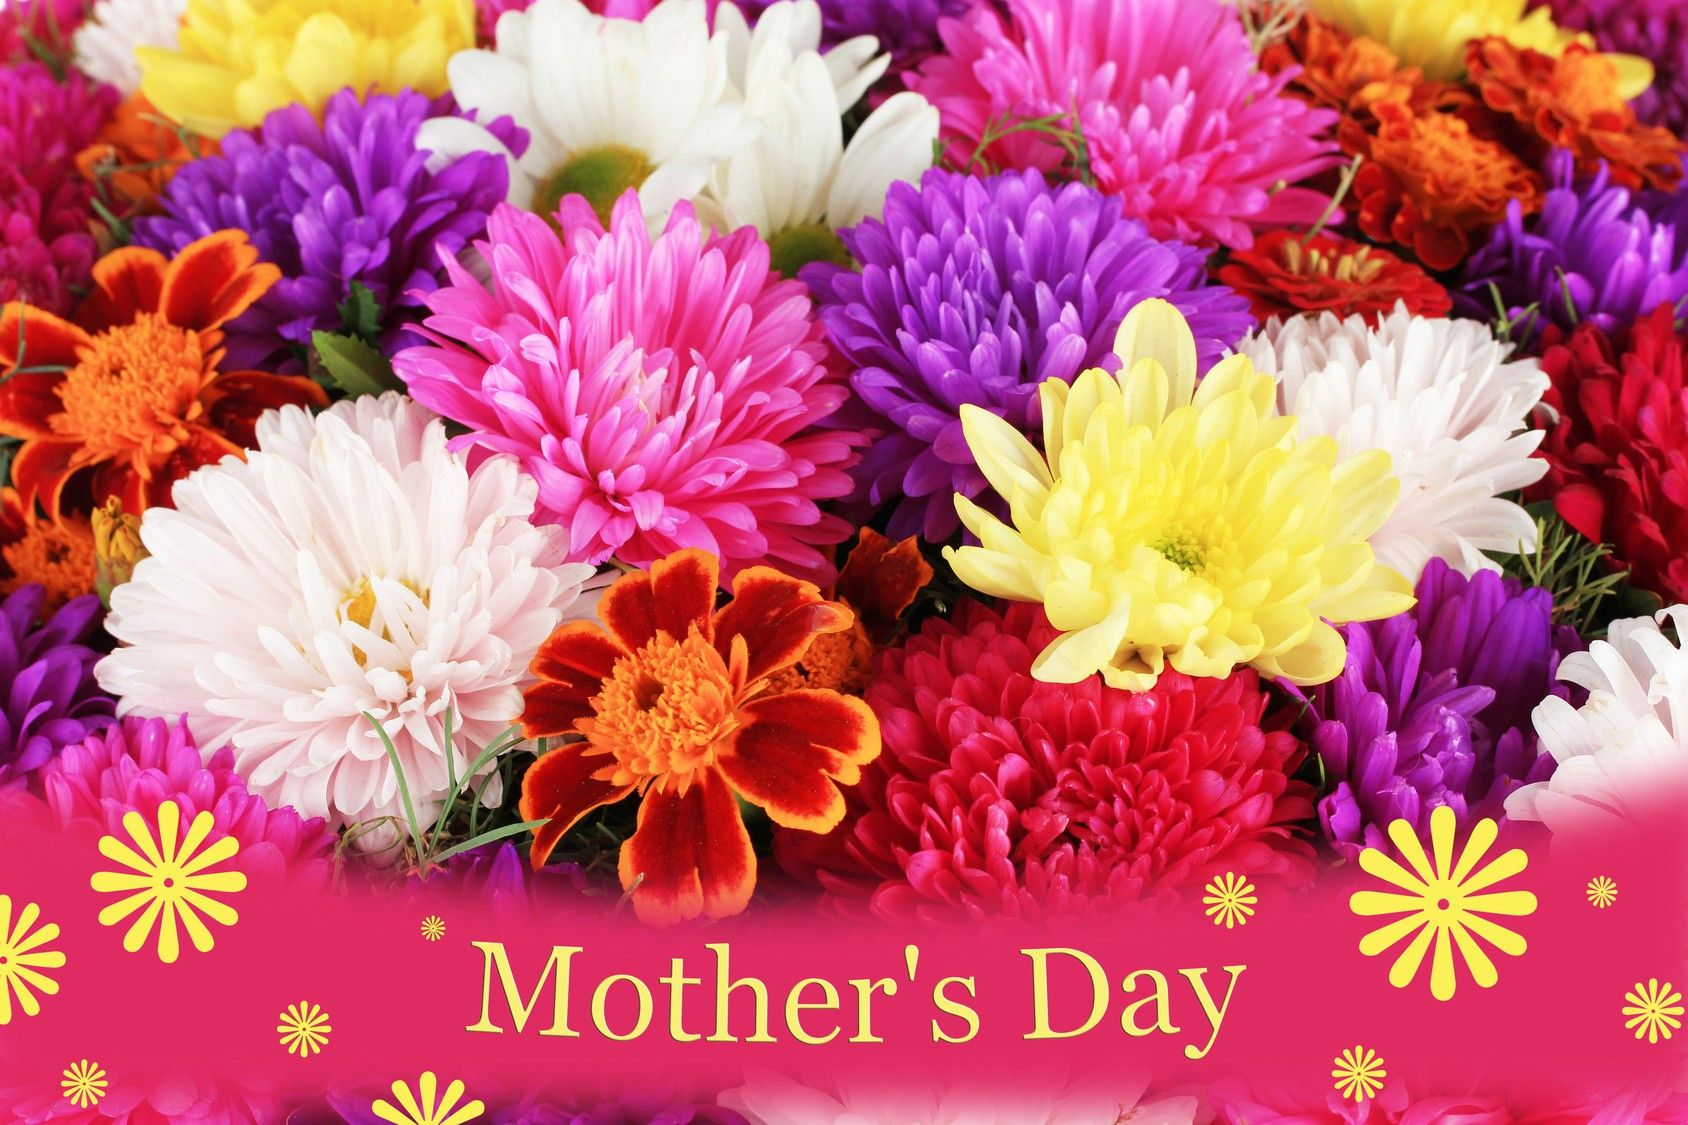 6ab8b45c618e2272af67acbbf0d4d821 free happy mothers day wallpaper 14 jpg (1688×1125) facebook cover